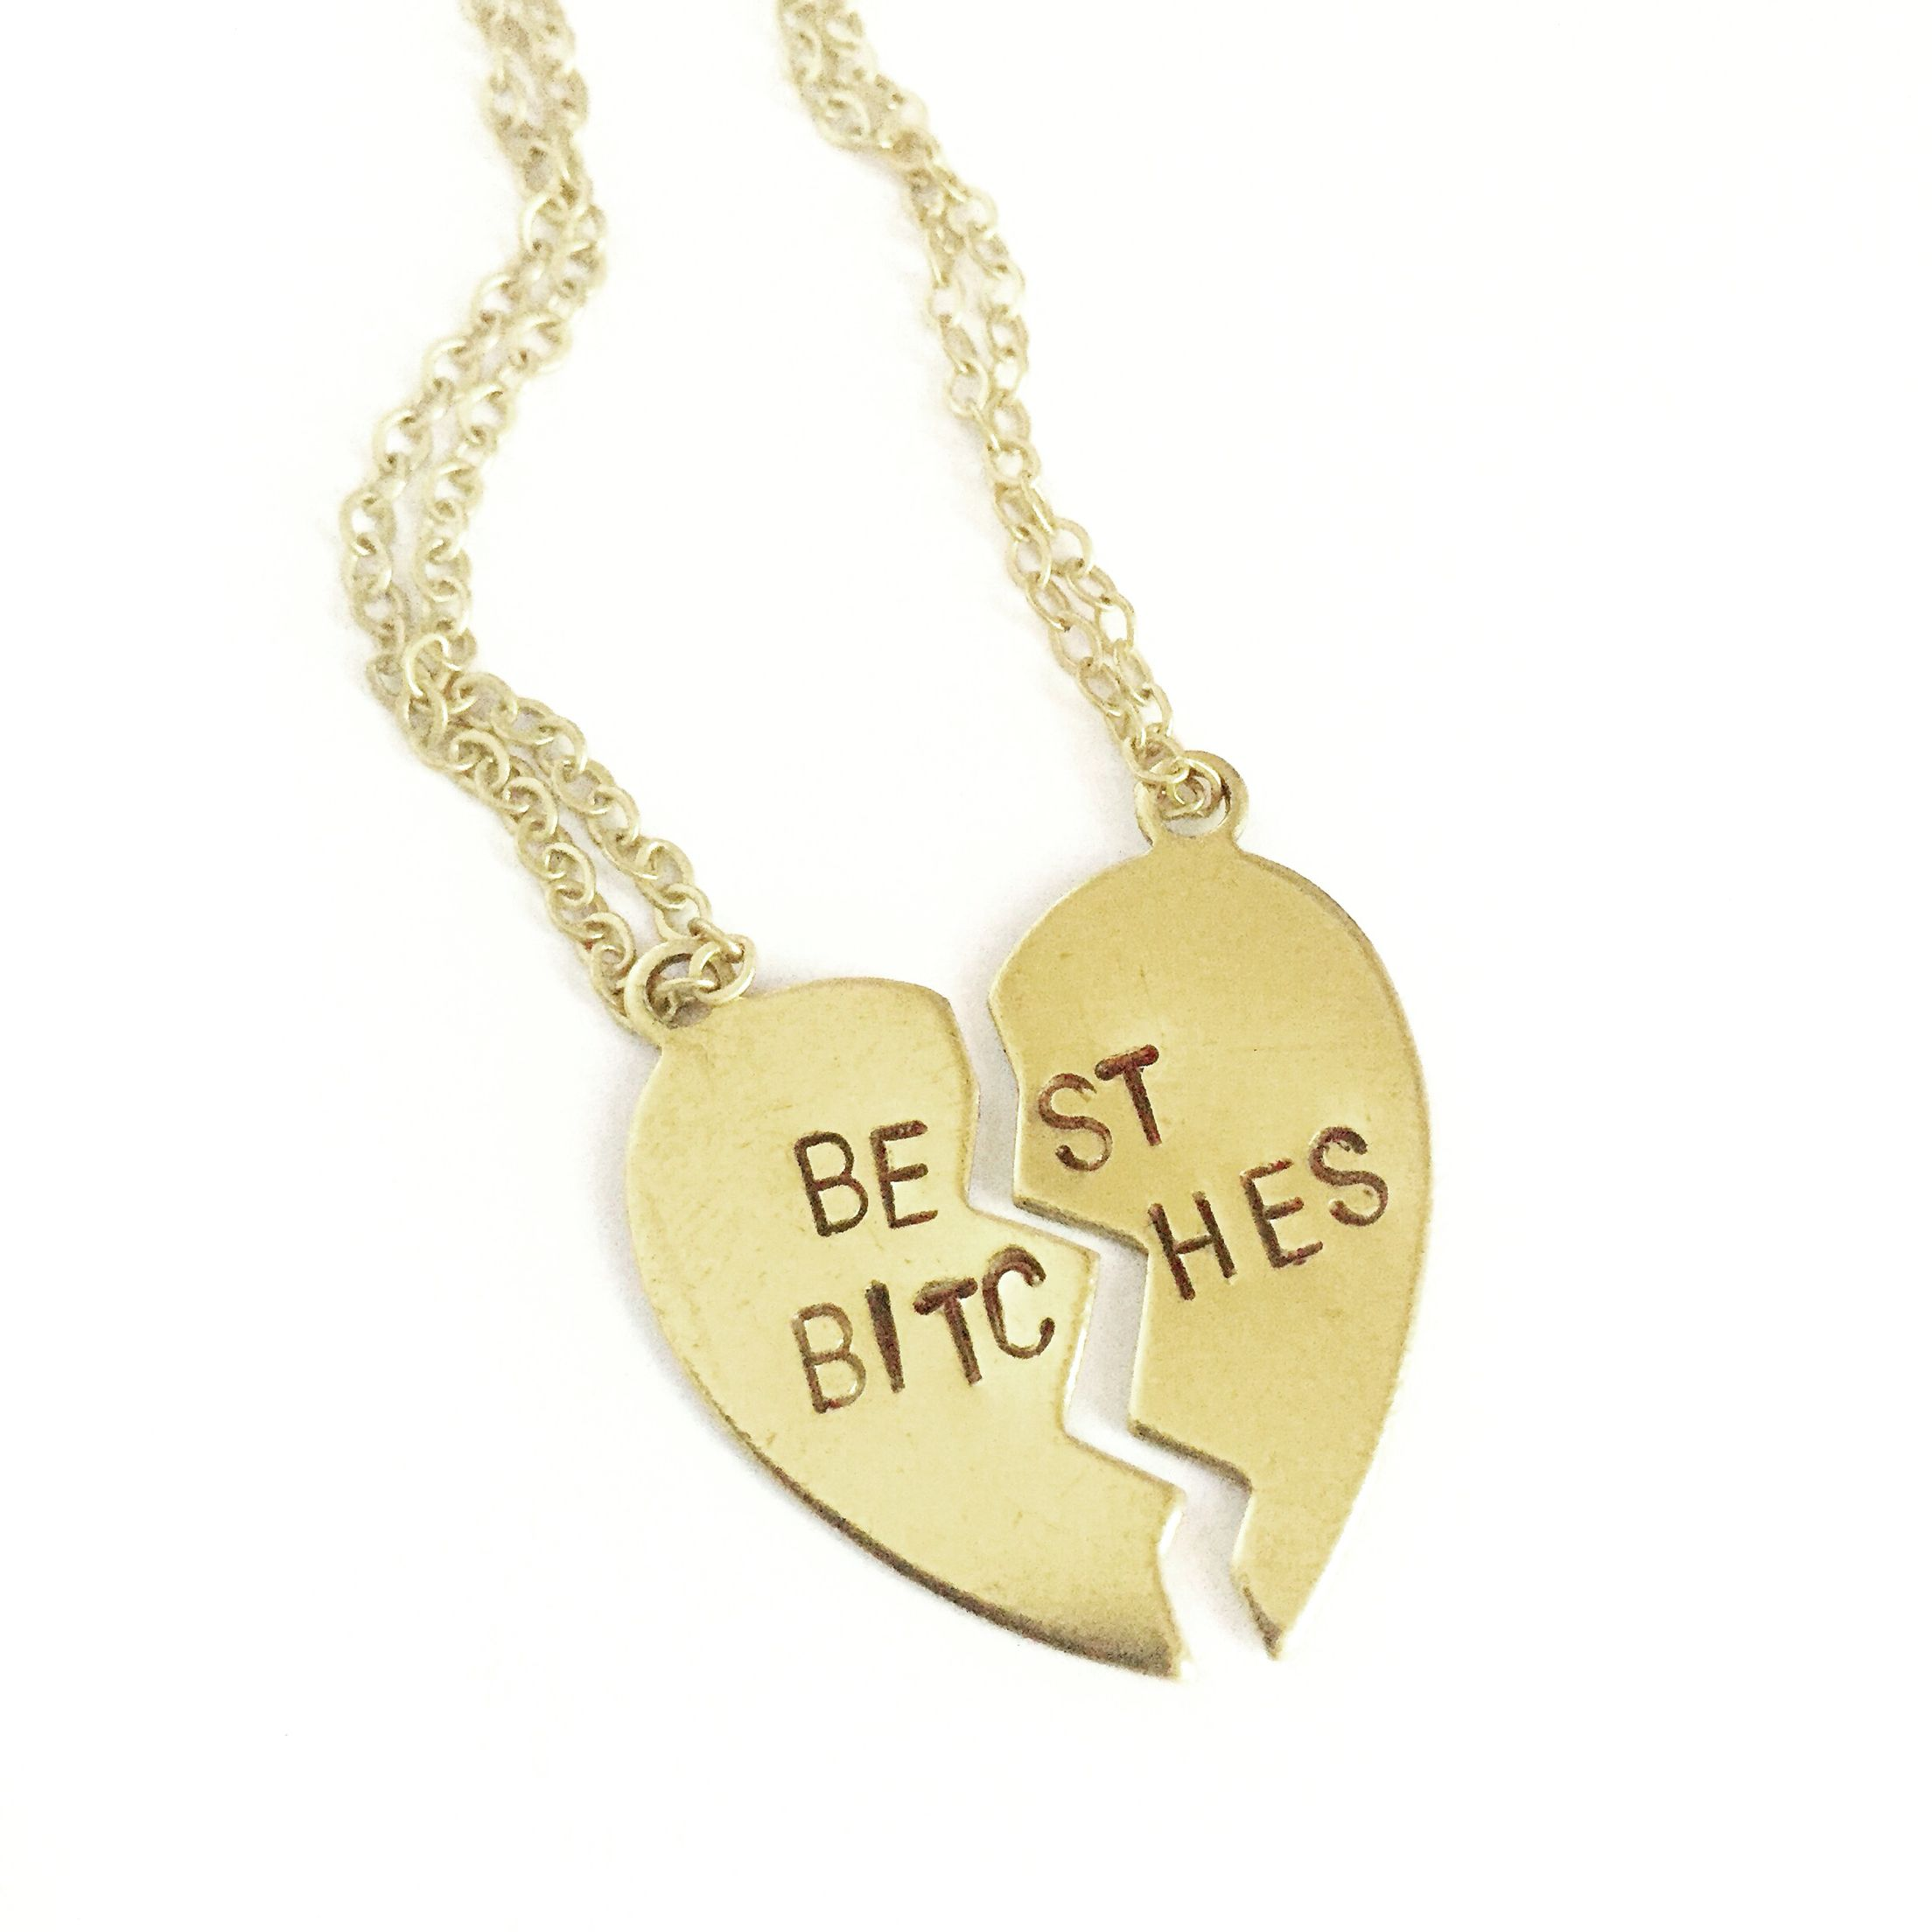 The Best #Bitches necklaces are here! Sold as a set of two and now available at GageHuntley.com. Hurry and grab you and your #bestie some hand stamped pretties.  #gagehuntley #custom #heart #necklace #bestbitches #gold #besties